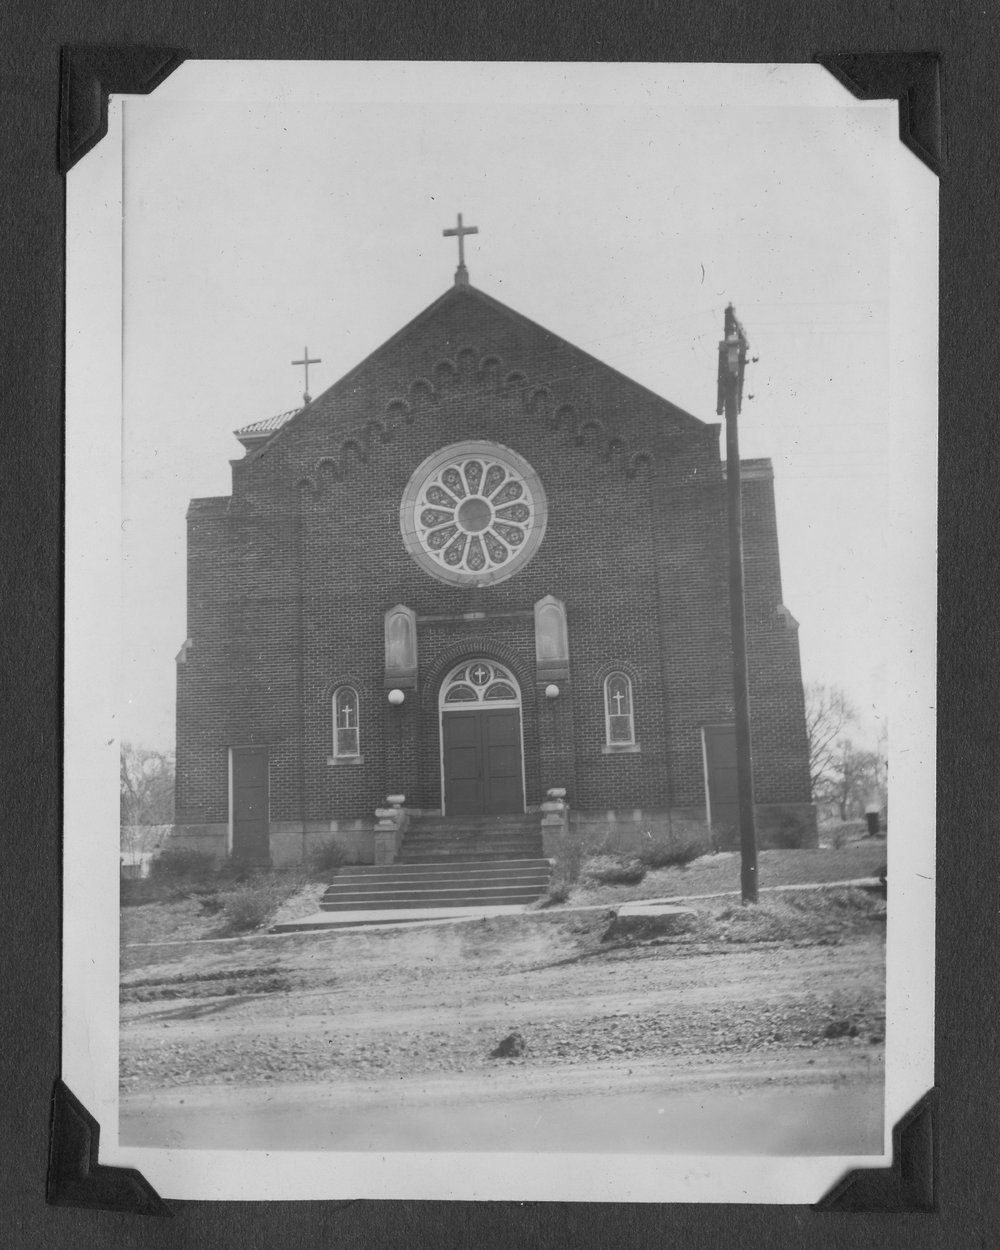 Melvin Brose photograph album - St. Mary's Imaculate Conception Church in Valley Falls, Kansas.